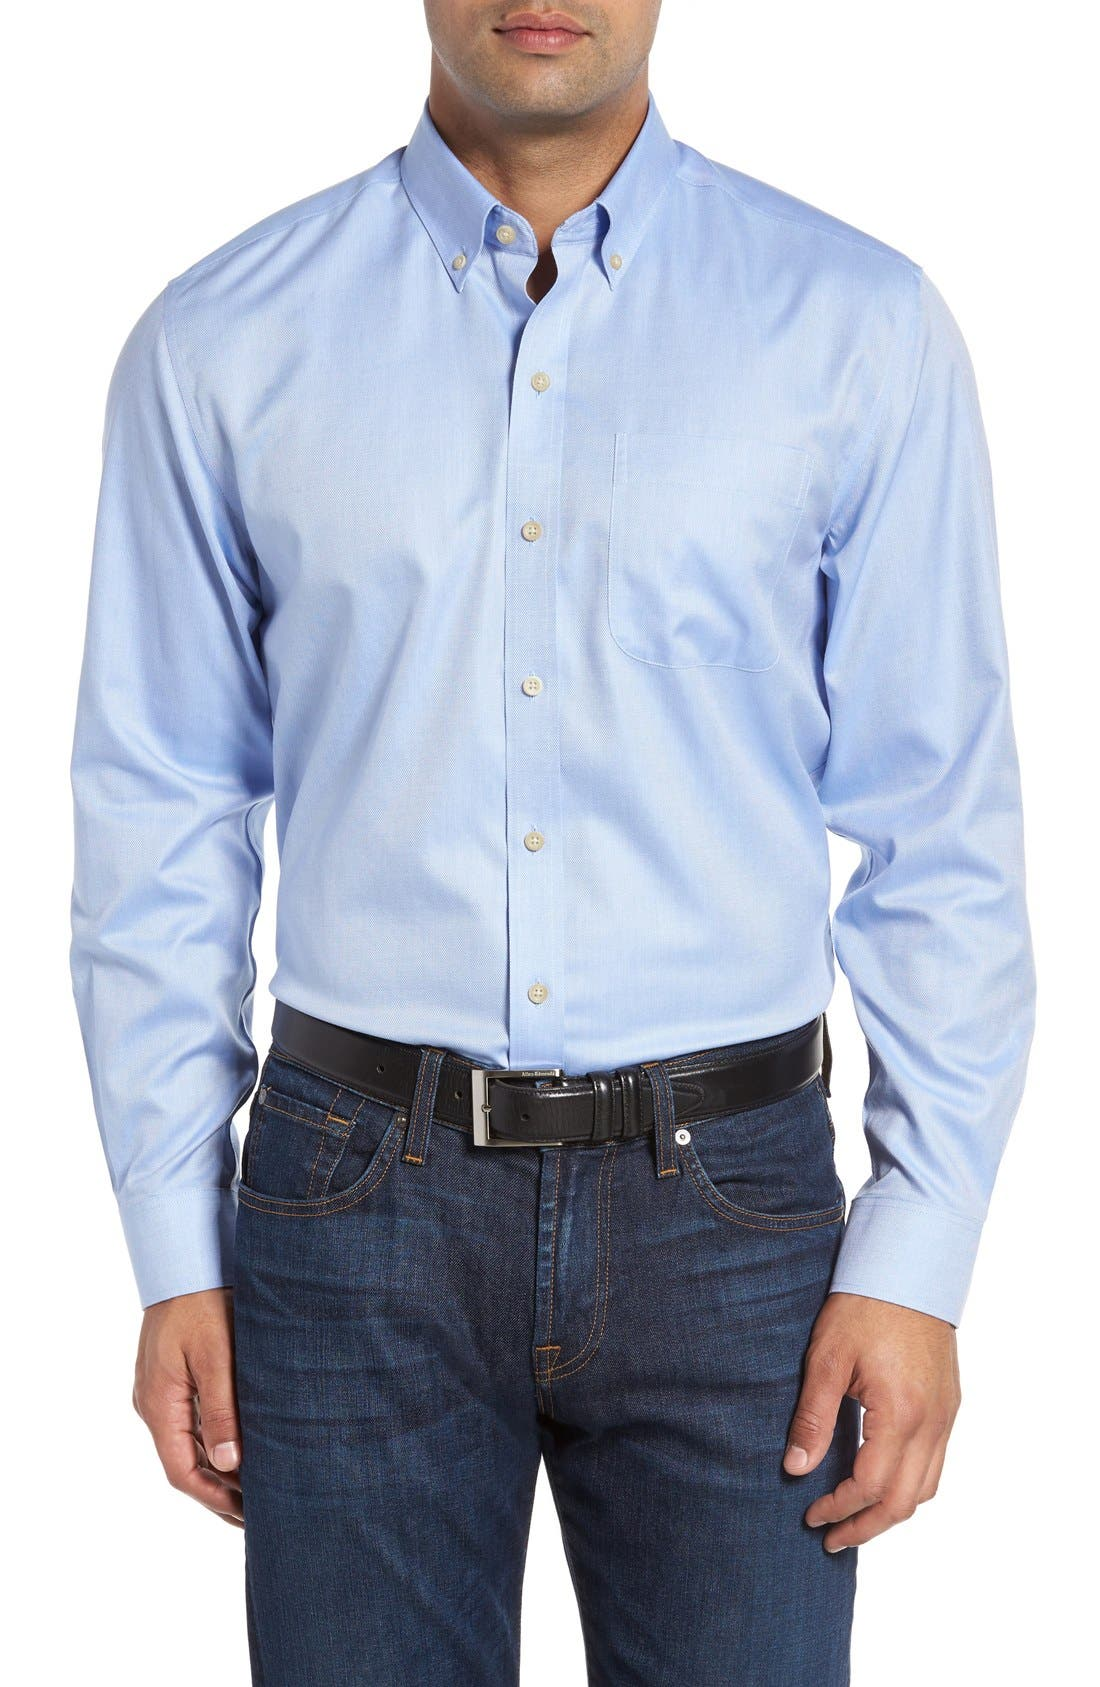 Alternate Image 1 Selected - Cutter & Buck San Juan Classic Fit Wrinkle Free Solid Sport Shirt